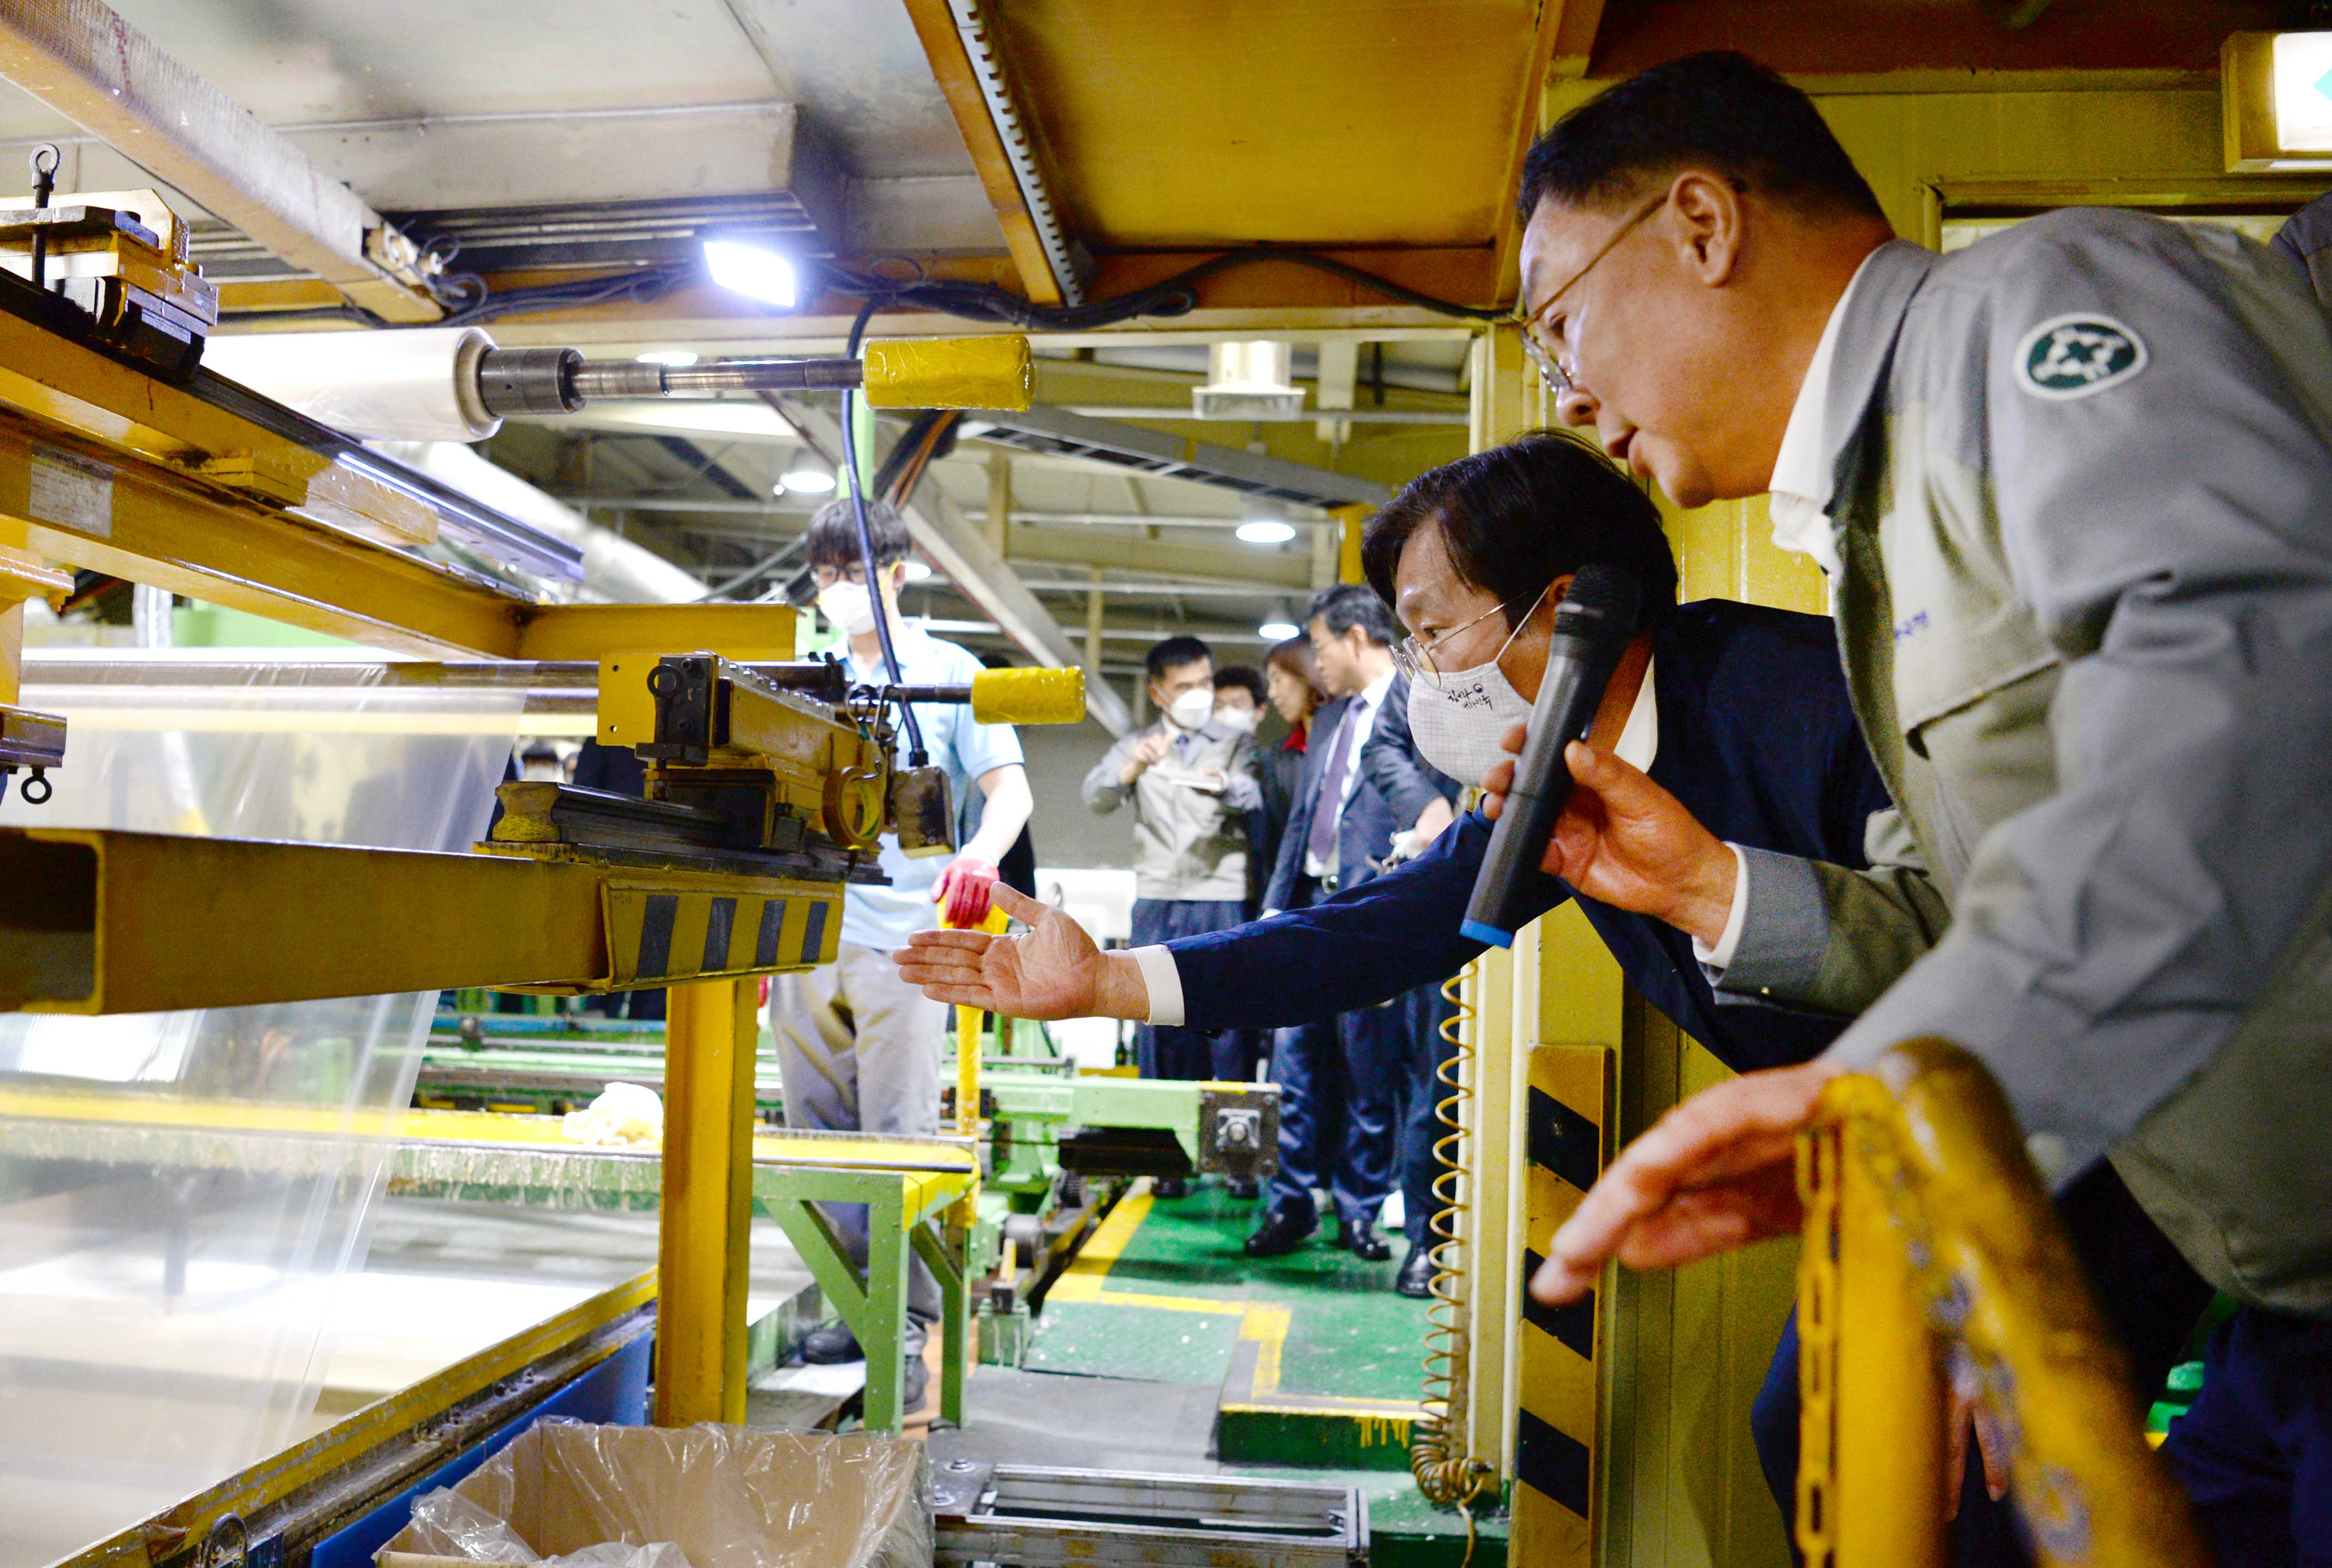 Minister Sung visits shipbuilding materials manufacturer to discuss coronavirus countermeasures Image 0